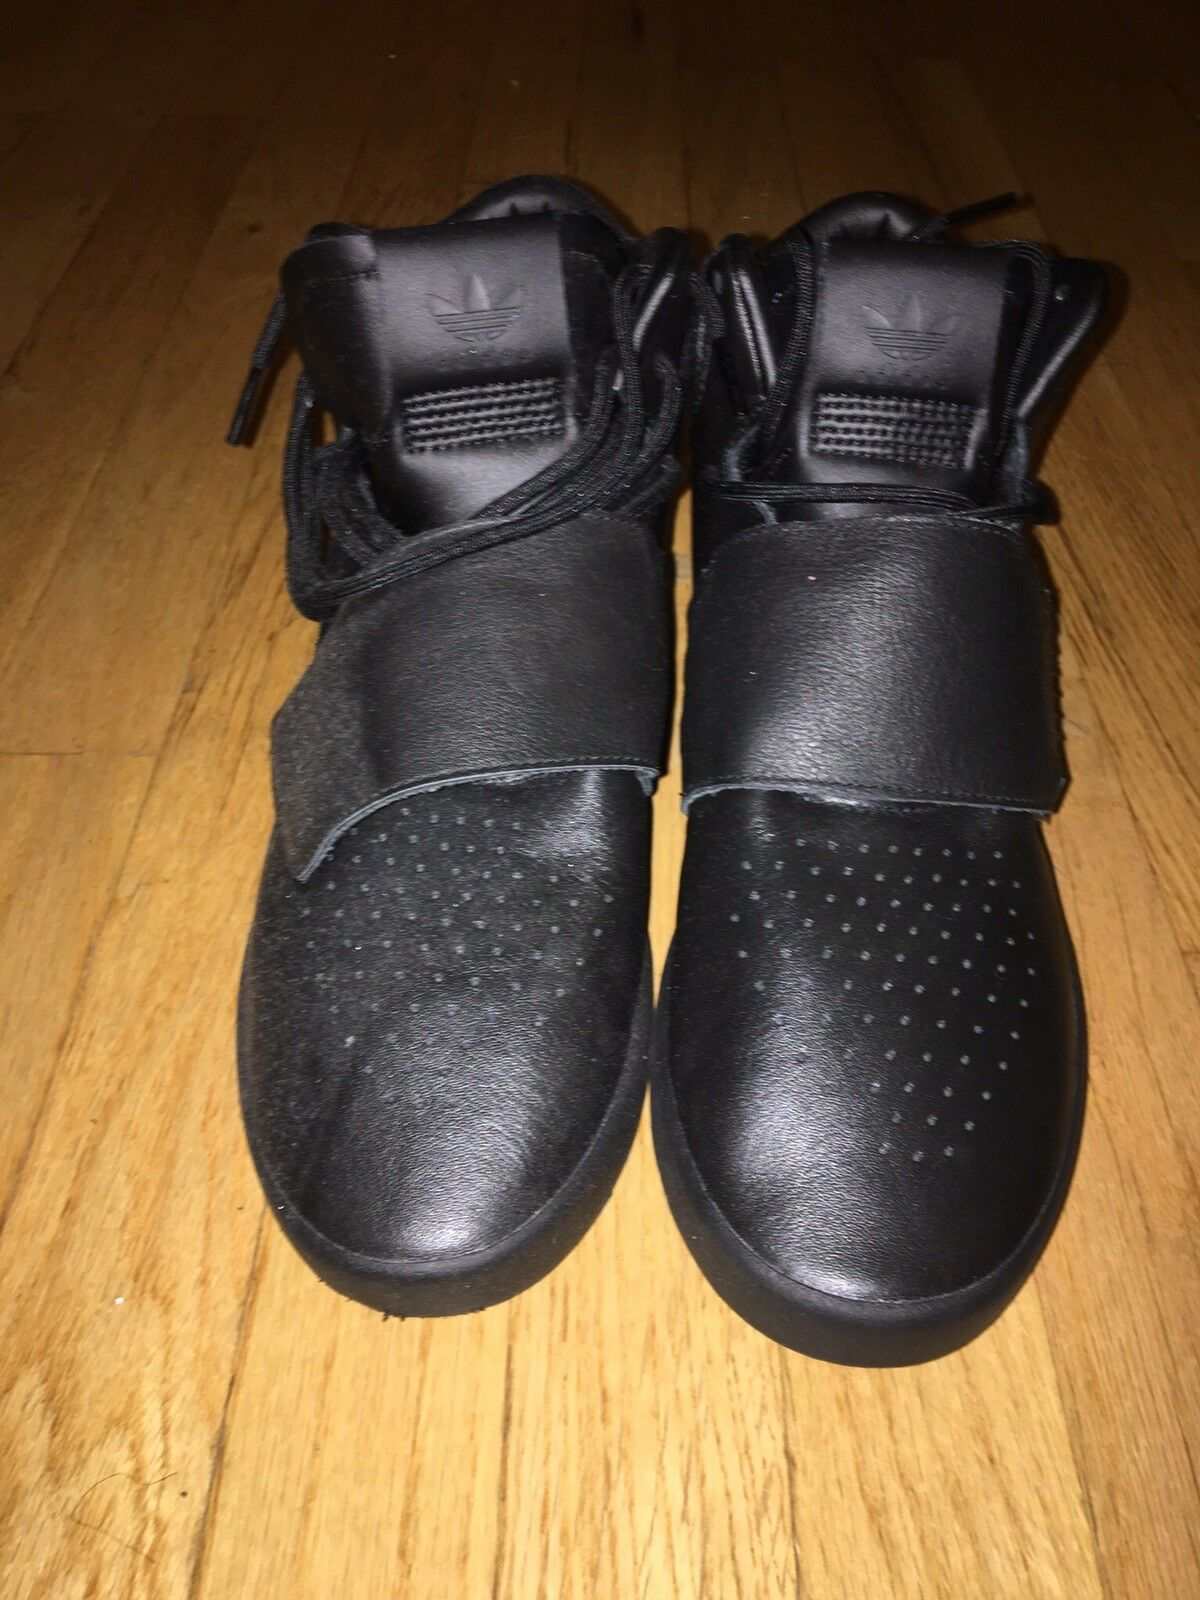 Cheap Nice Addidas Tubular Invasion Sneakers on the sale